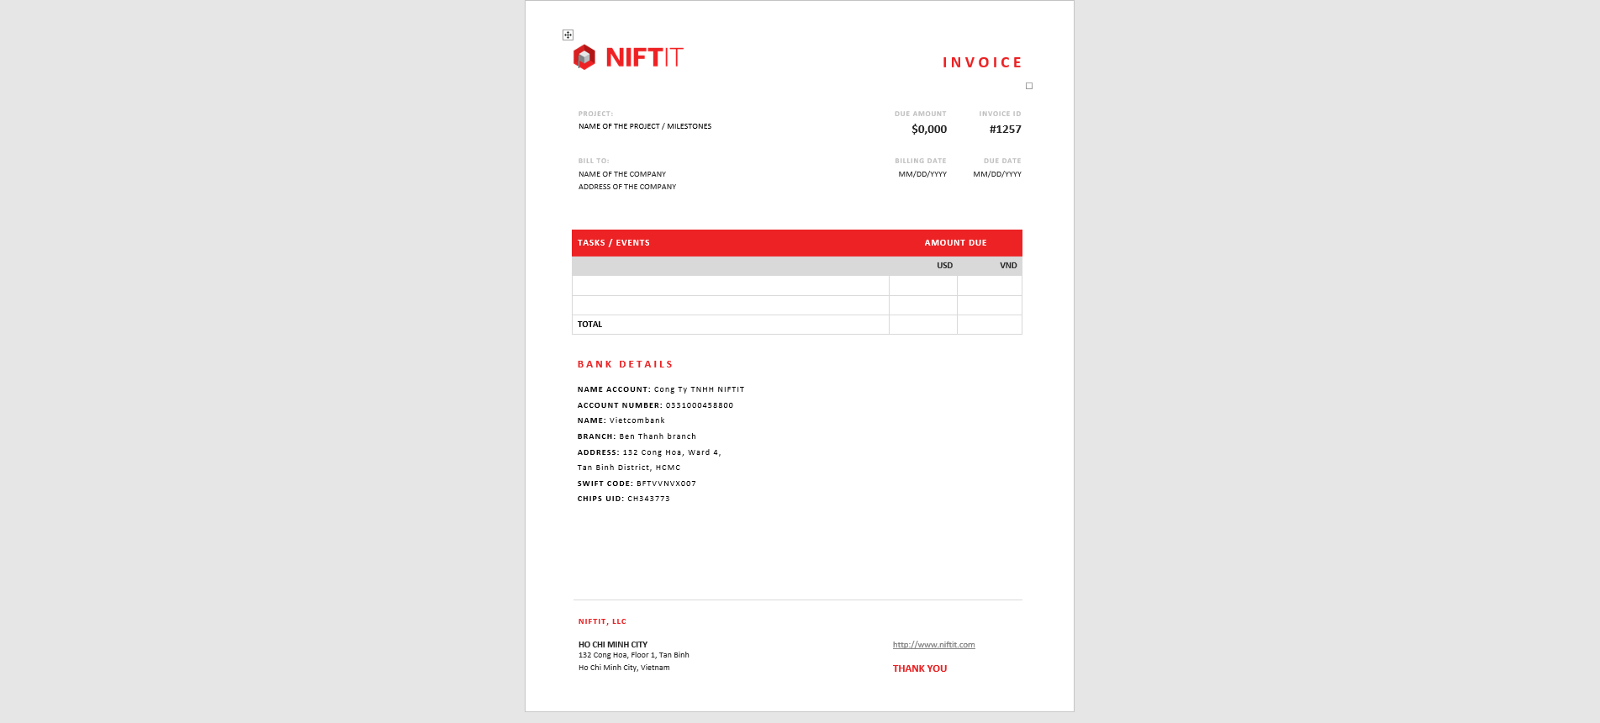 invoice template created with microsoft word